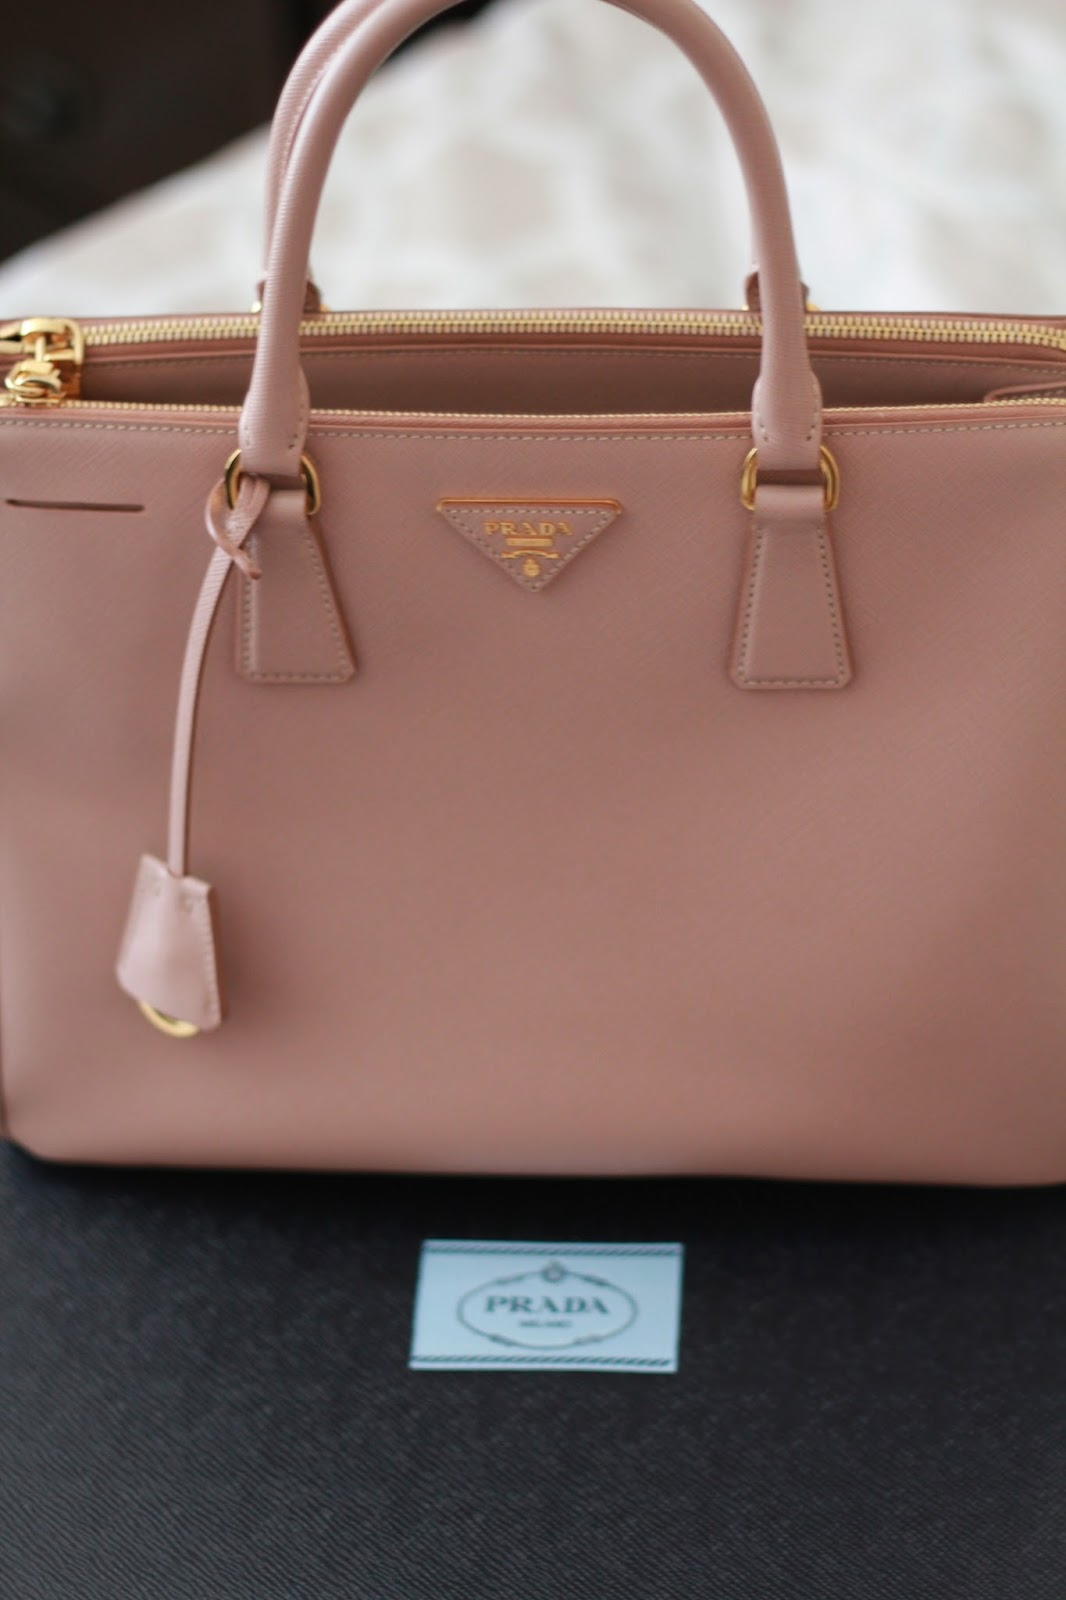 Sweet September: PRADA SAFFIANO LUX: REVIEW